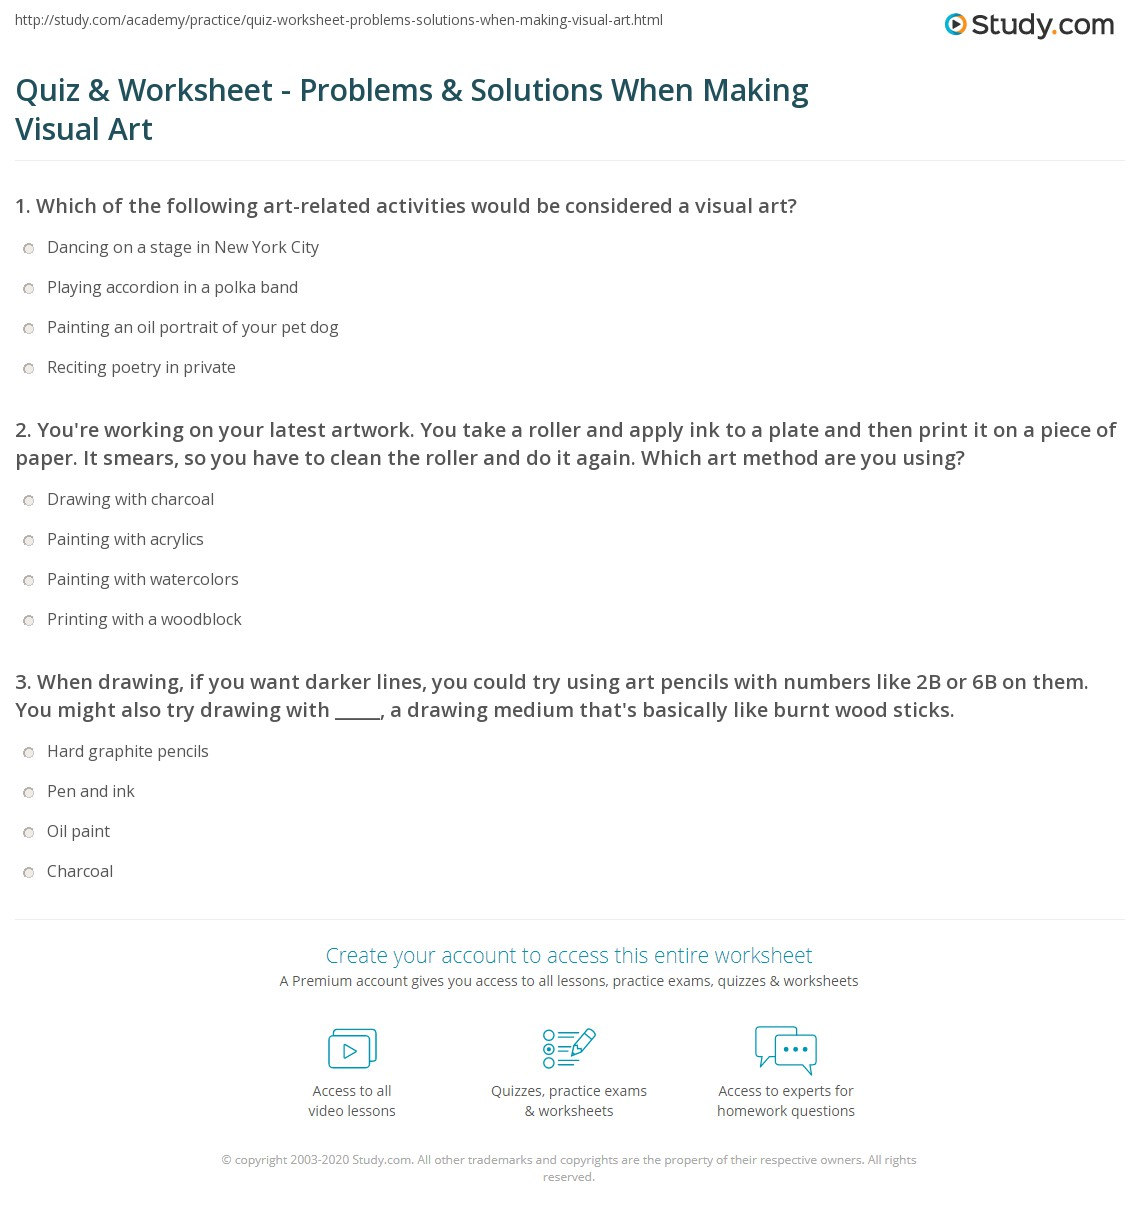 Quiz Worksheet Problems Solutions When Making Visual